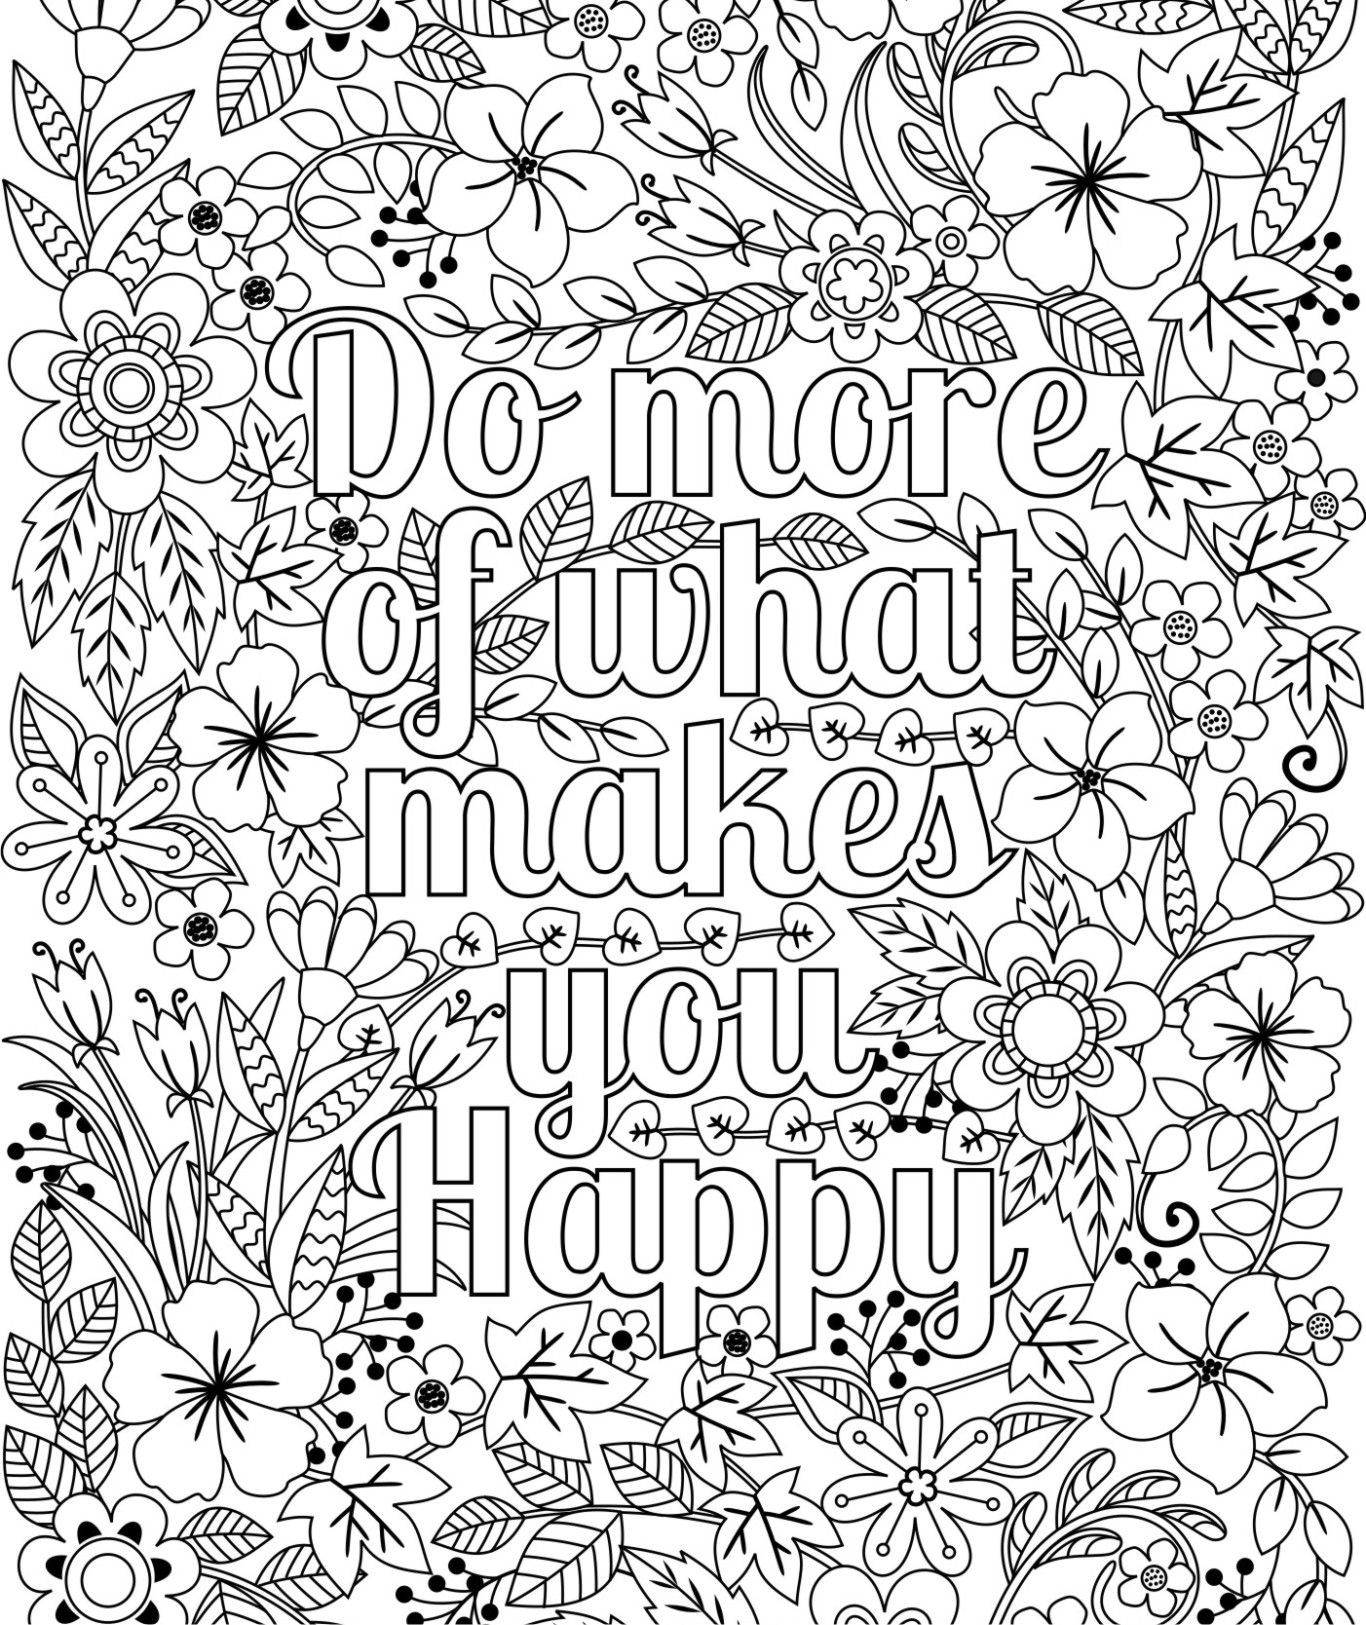 1366x1625 Coloring Pictures Of Kindness Best Of New Kindness Coloring Pages